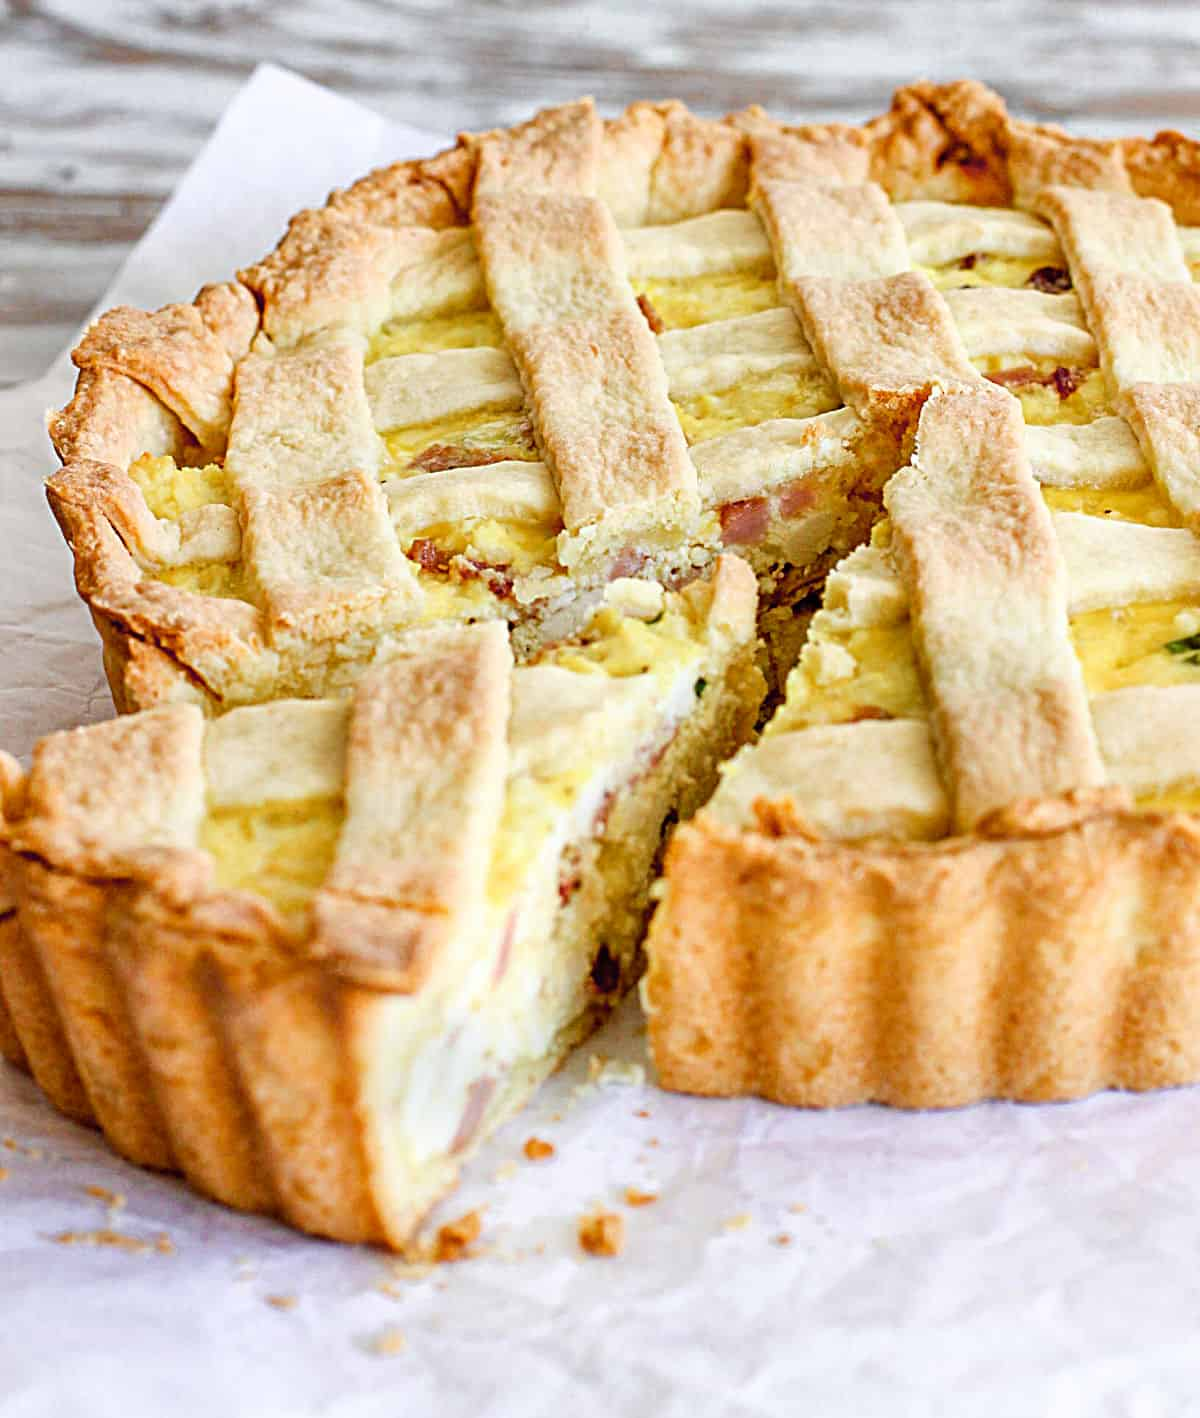 Whole lattice ricotta pie with one slice coming out on a white paper